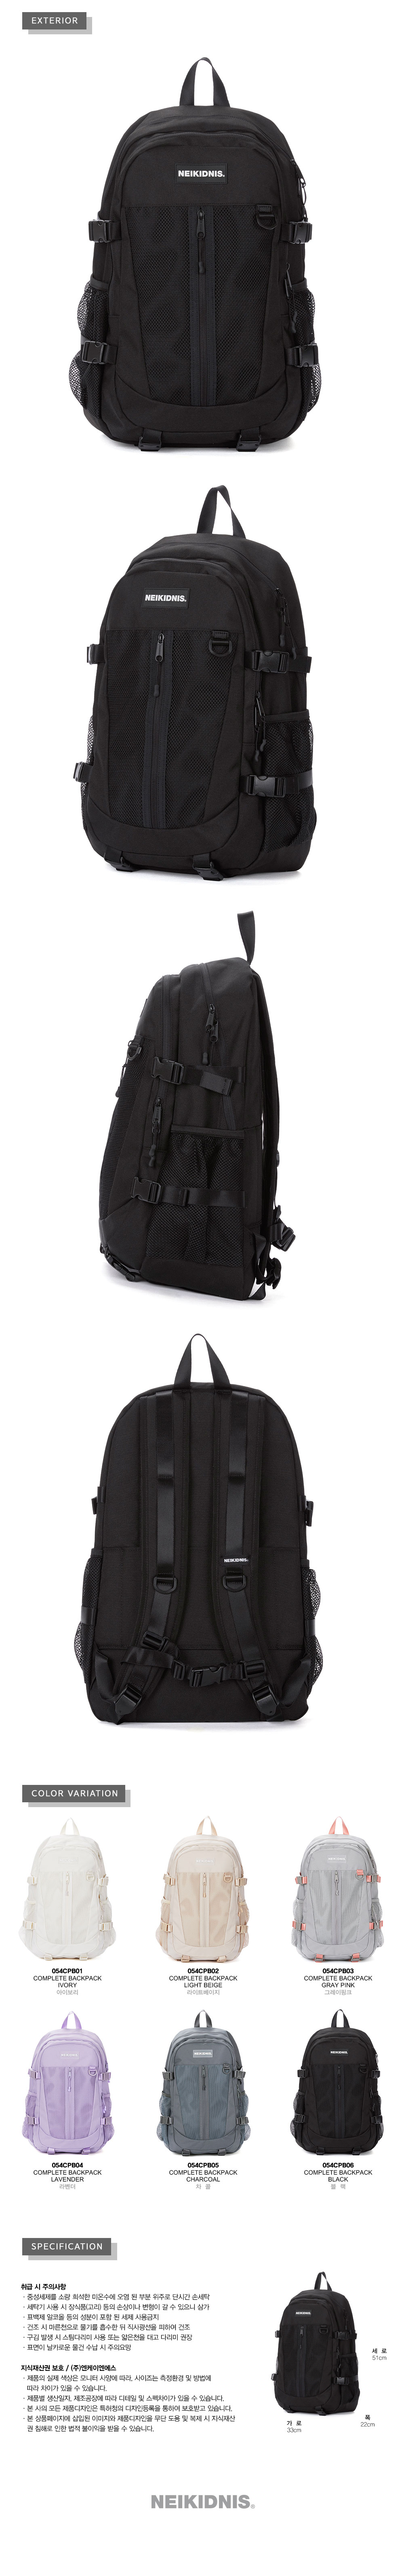 네이키드니스(NEIKIDNIS) COMPLETE BACKPACK / BLACK